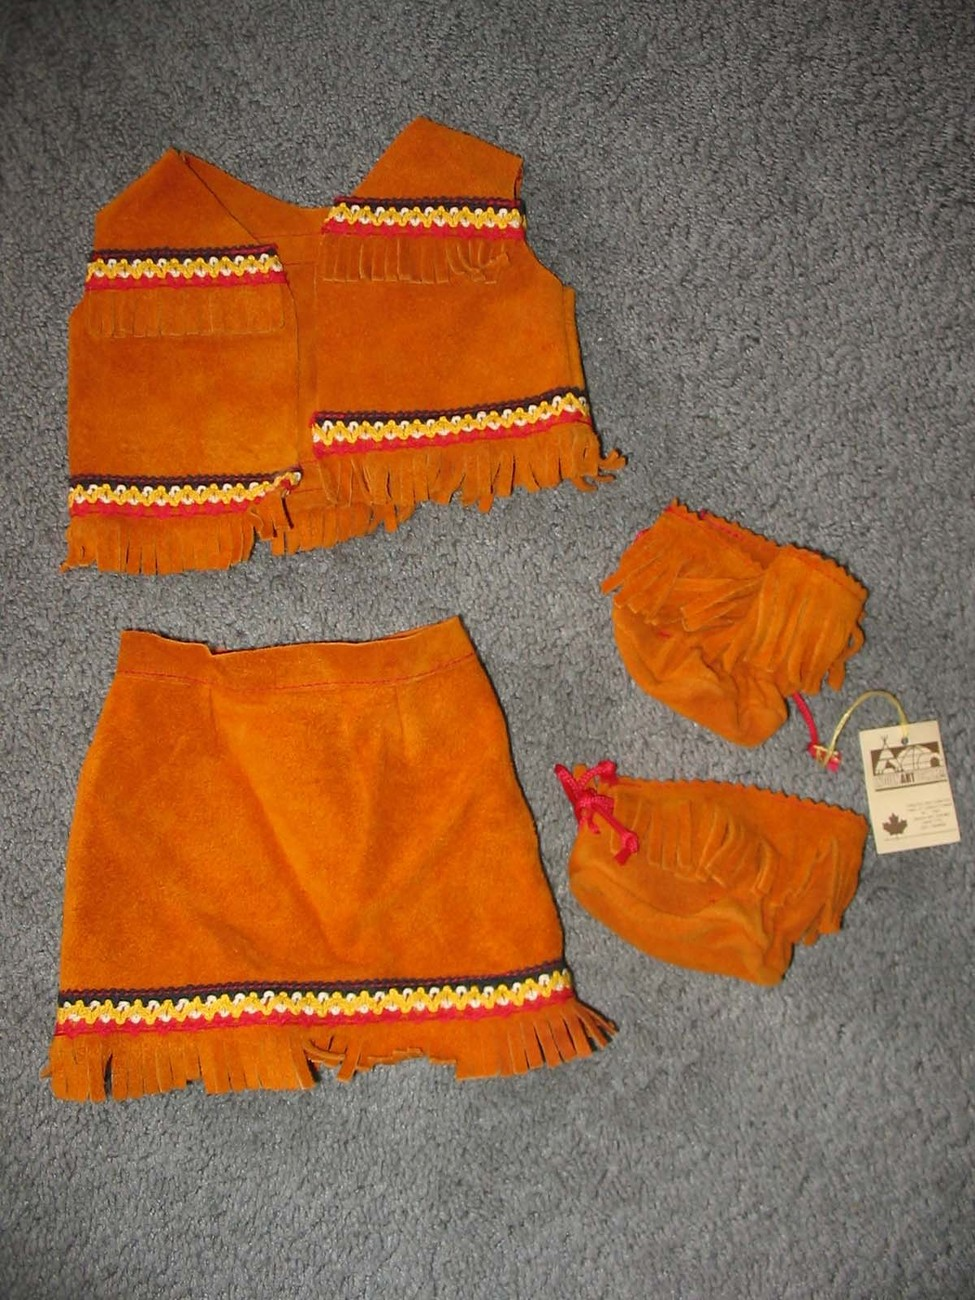 INDIAN Indien Art Eskimo Cabbage Patch & Doll Clothes	 INDIA